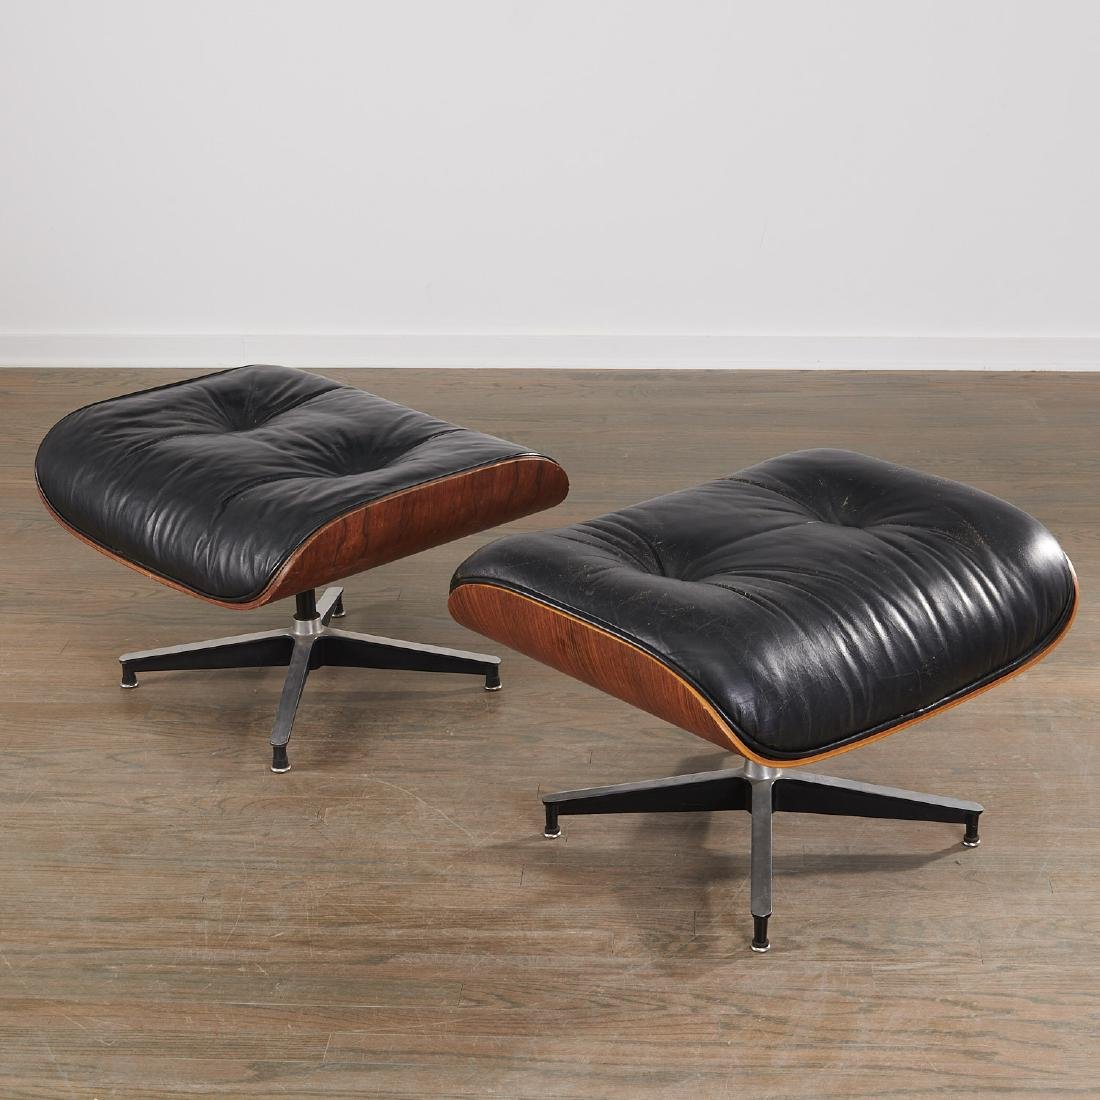 (2) Charles and Ray Eames 671 ottomans